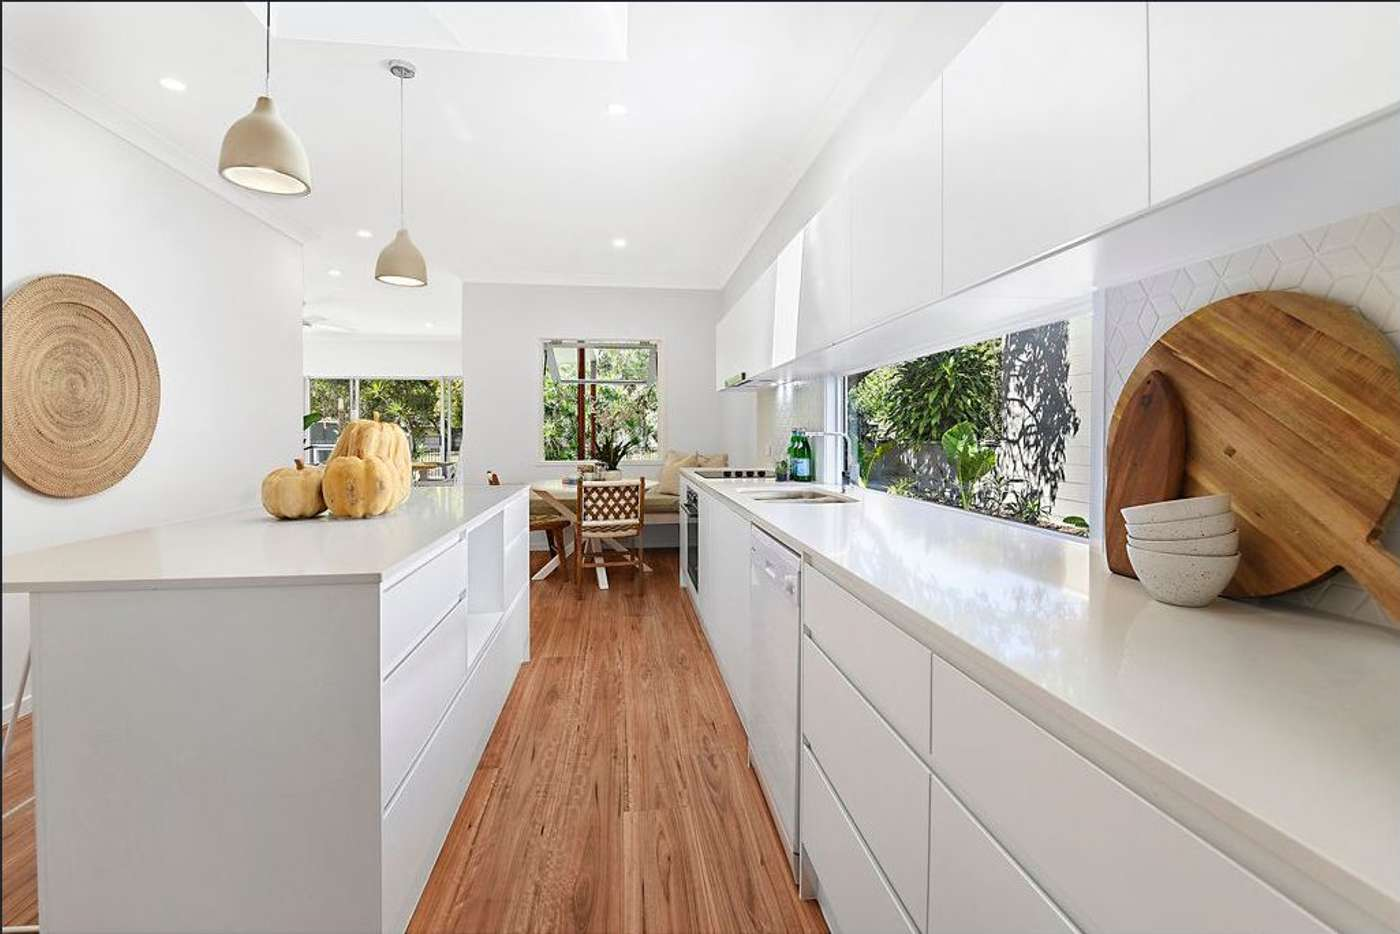 Main view of Homely house listing, 33 Mungera Street, Runaway Bay QLD 4216